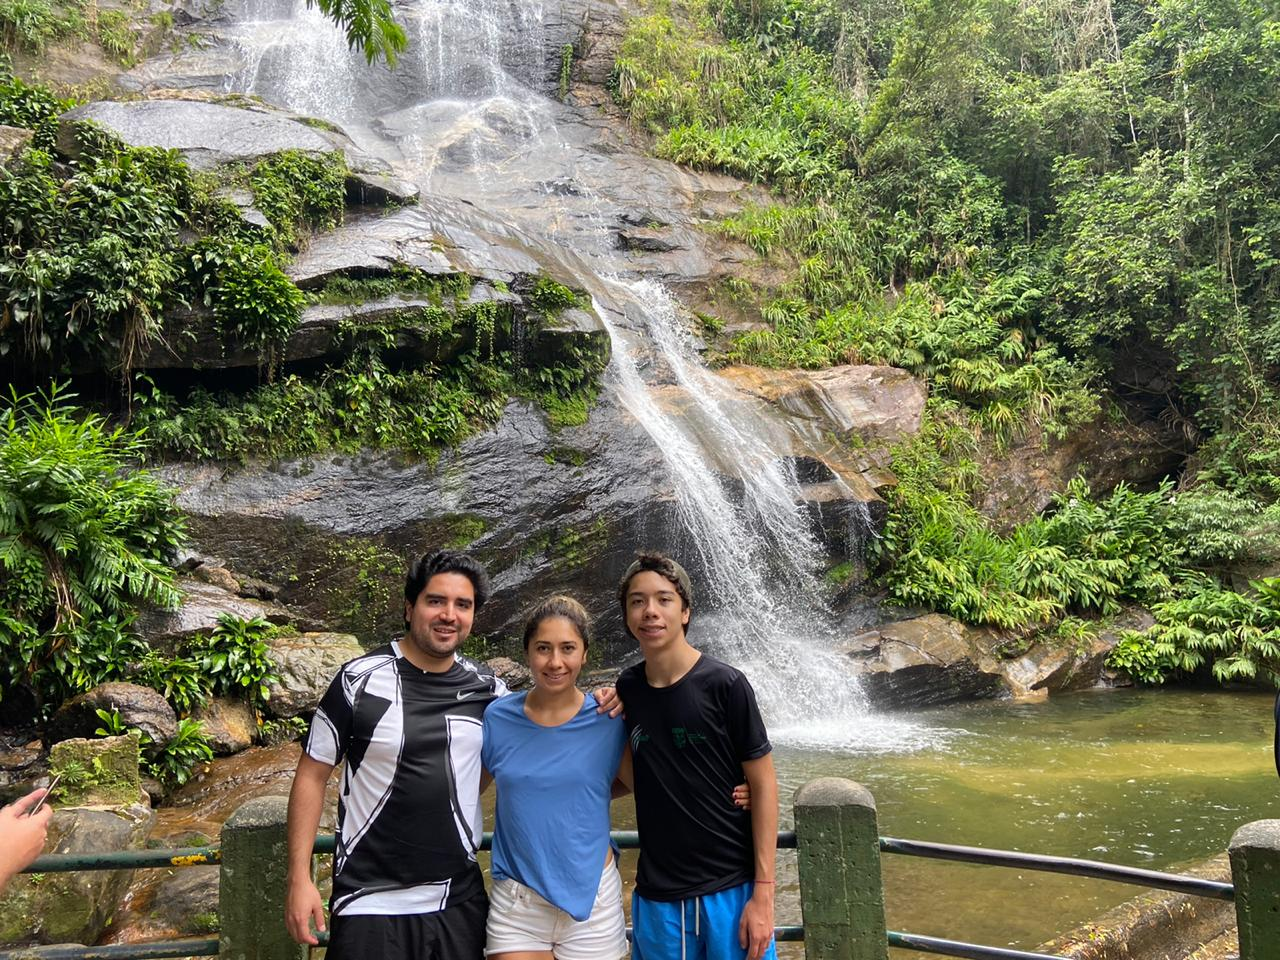 Discovering Tijuca Forest. Students in front of the waterfall in Tijuca Forest